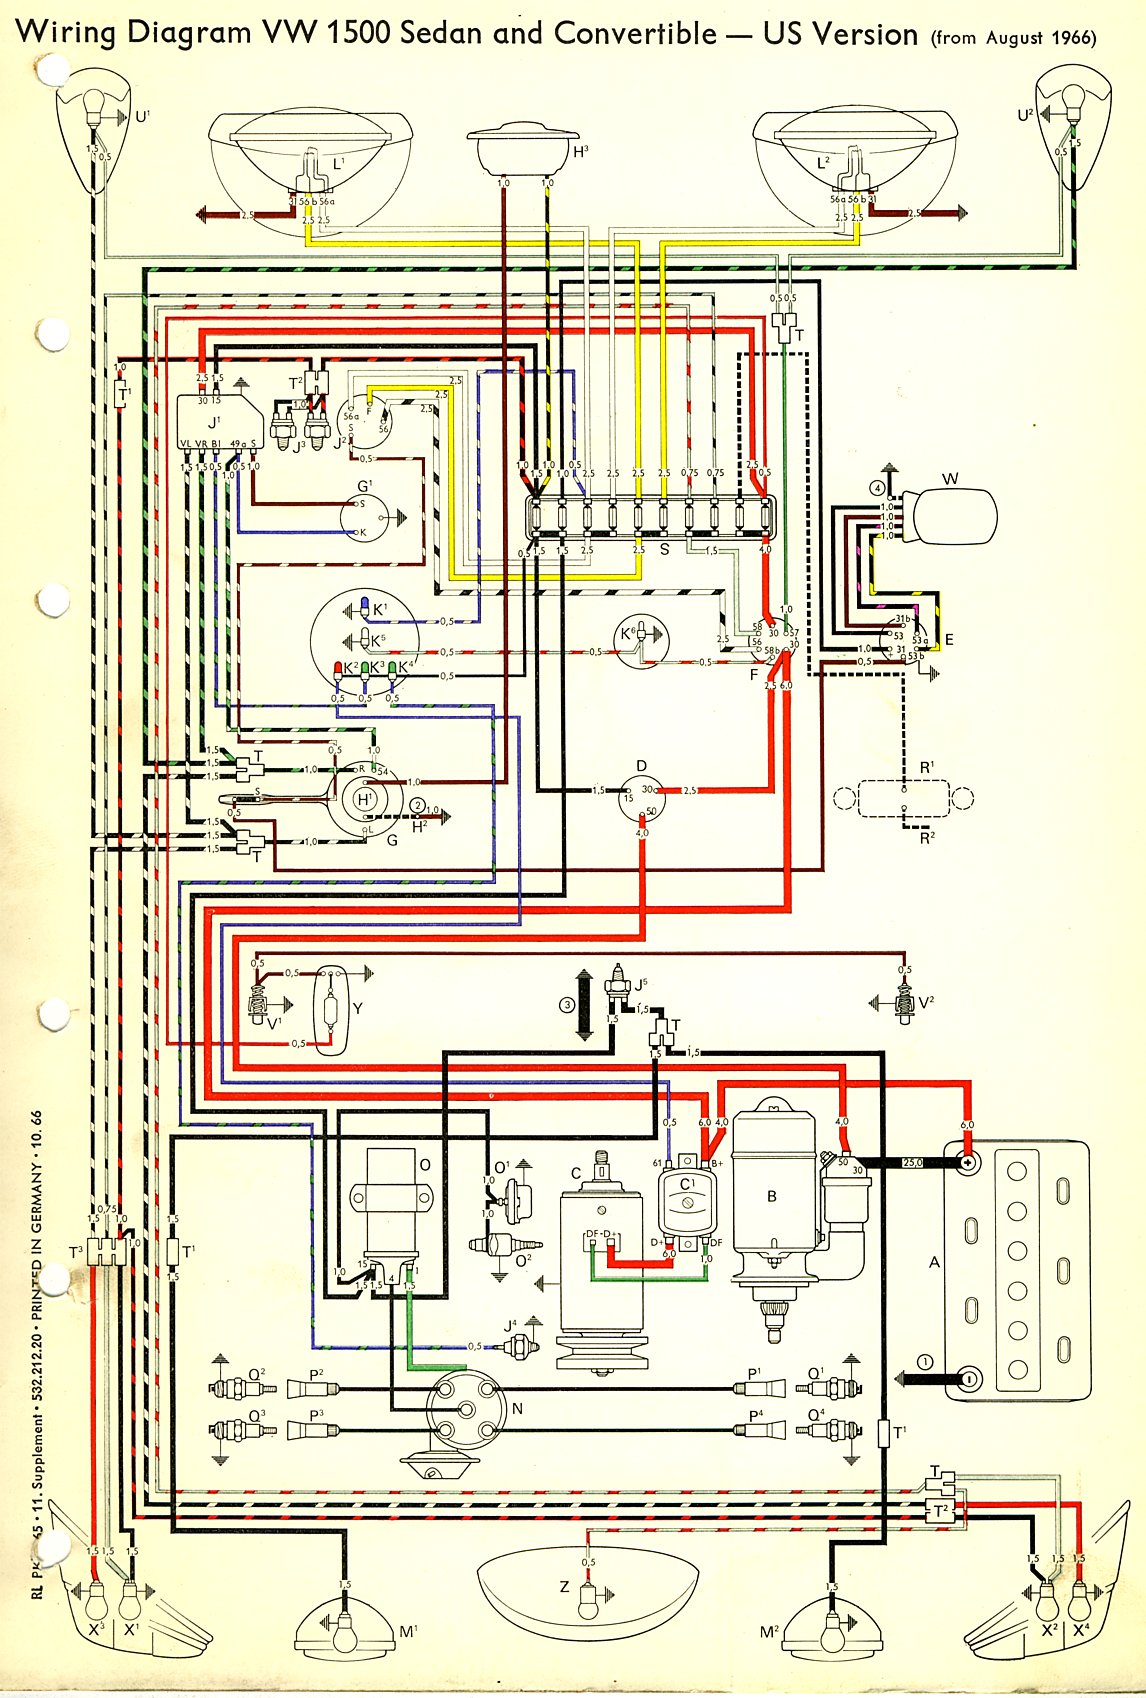 thesamba com type 1 wiring diagrams rh thesamba com VW Beetle Diagram VW Beetle Diagram